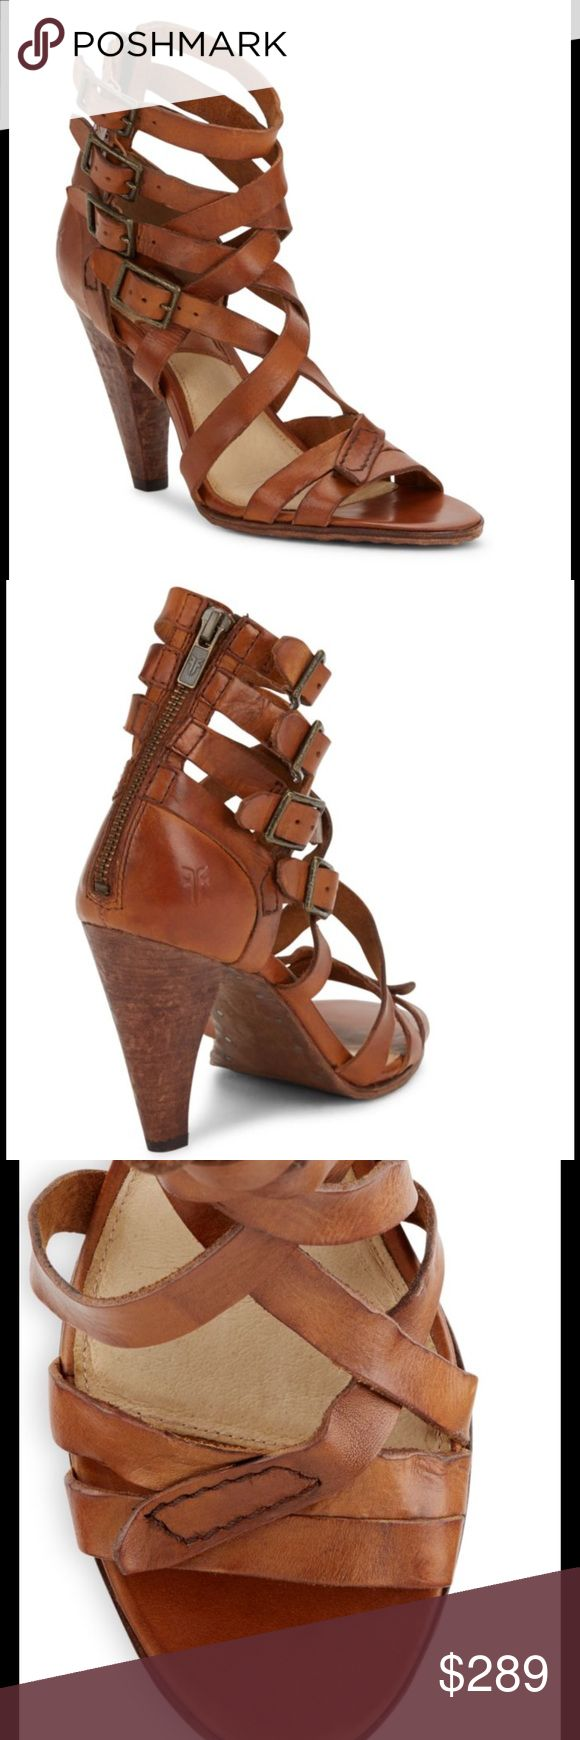 🎉HP🎉 NIB Frye Mika Gladiator Open Toe Sandals These are absolutely stunning! Frye Shoes